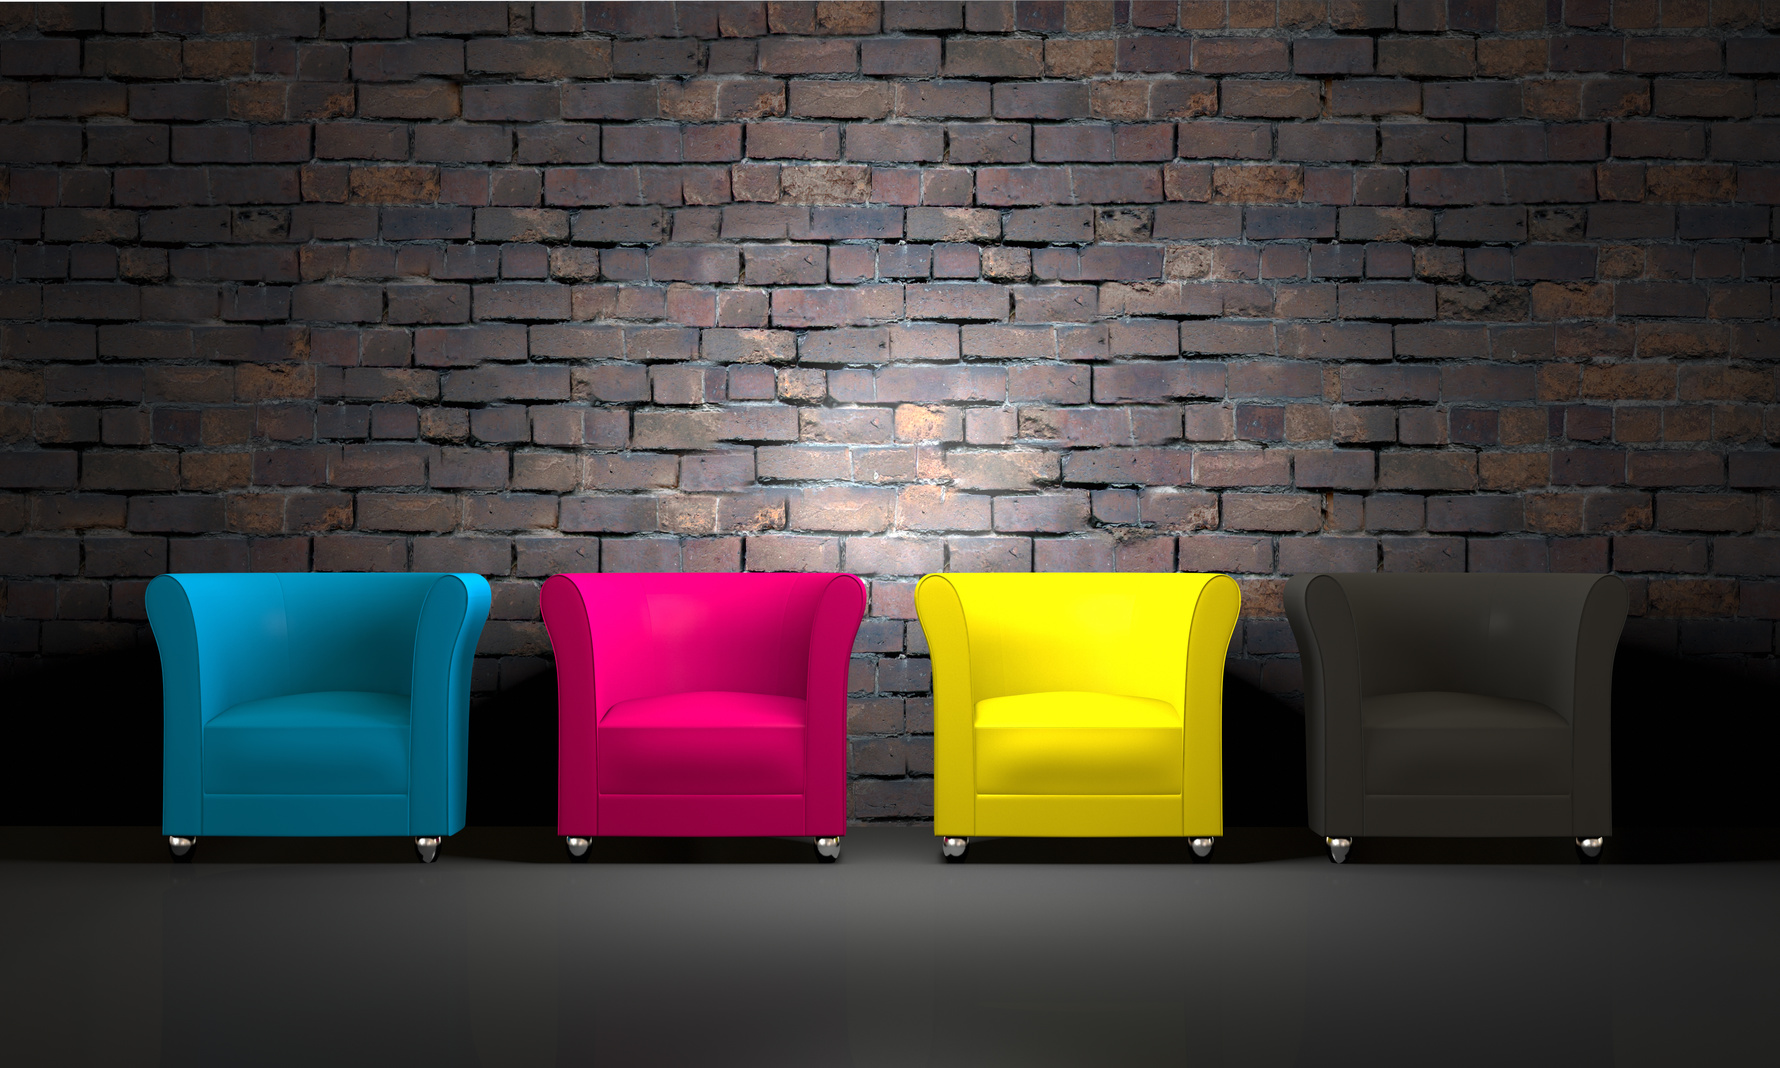 3D CMYK chairs and brick wall